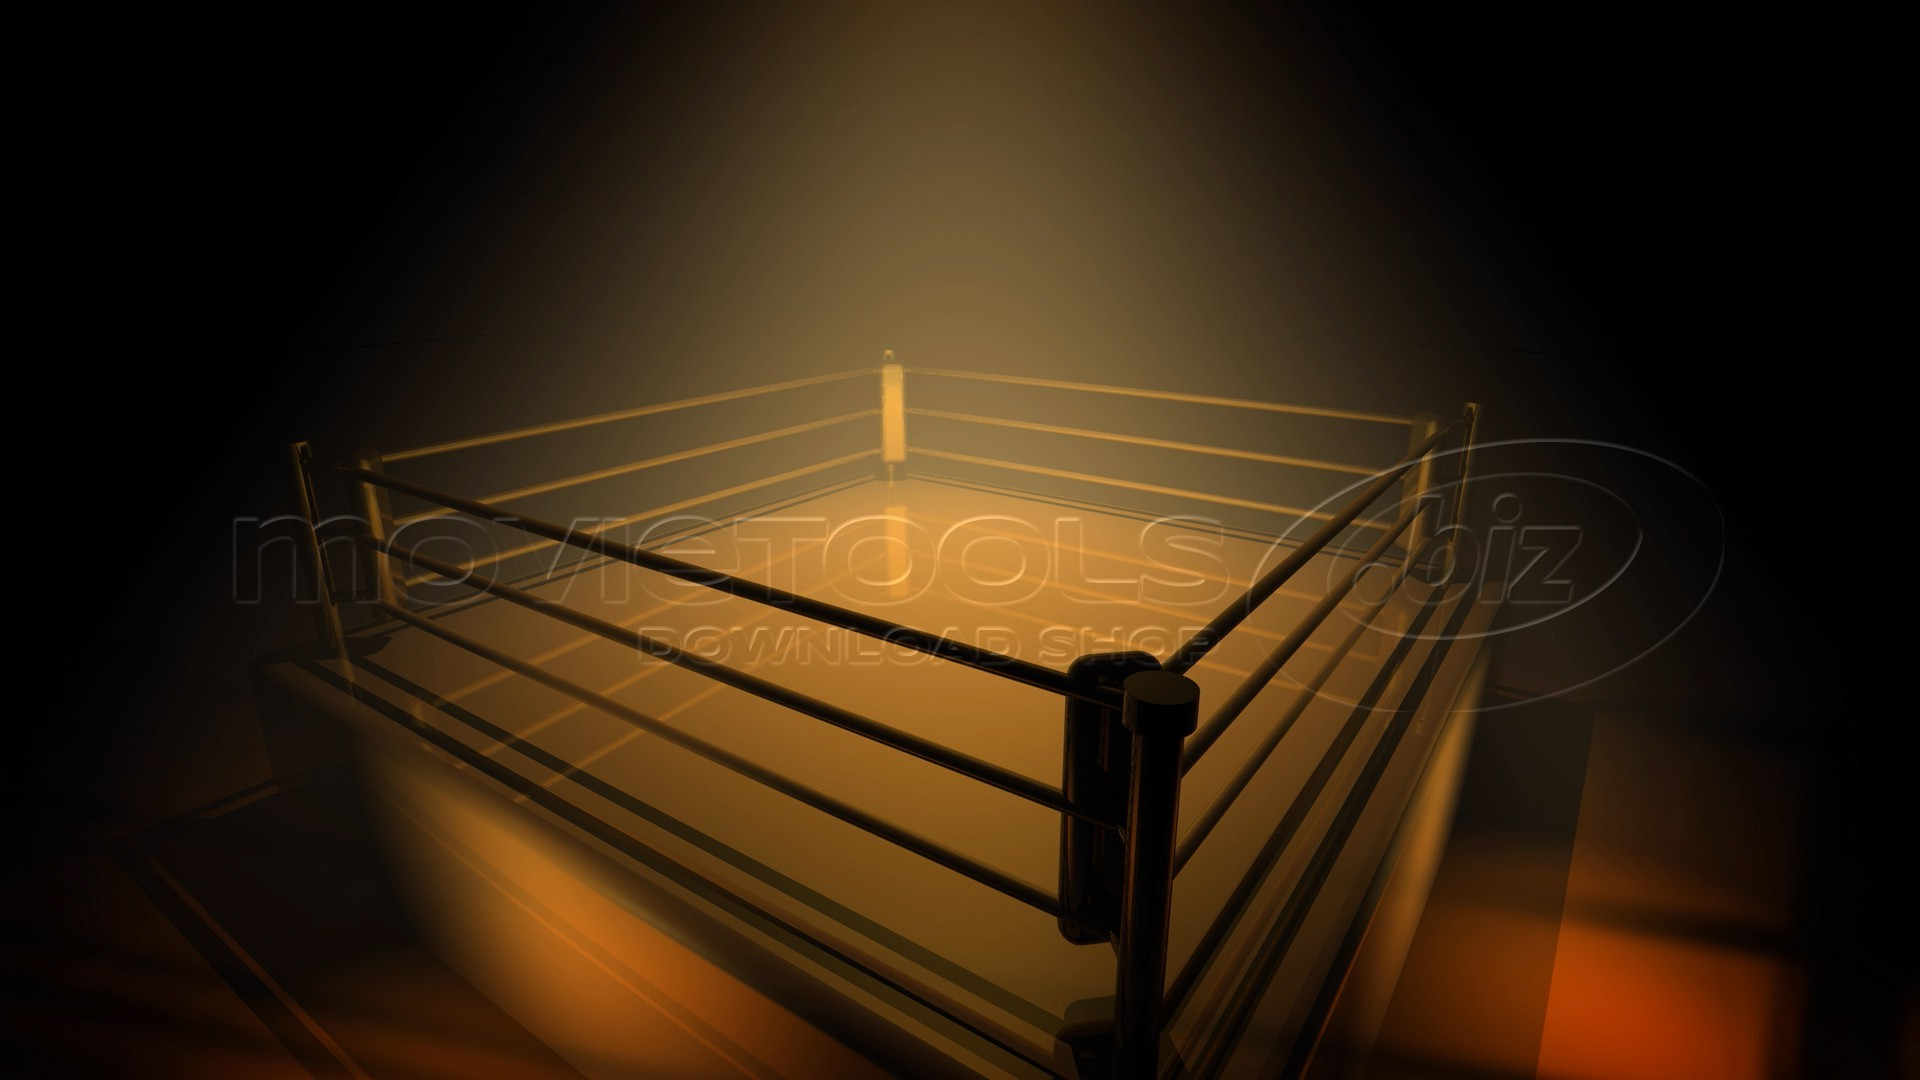 Boxing Gym Wallpaper 68 Images